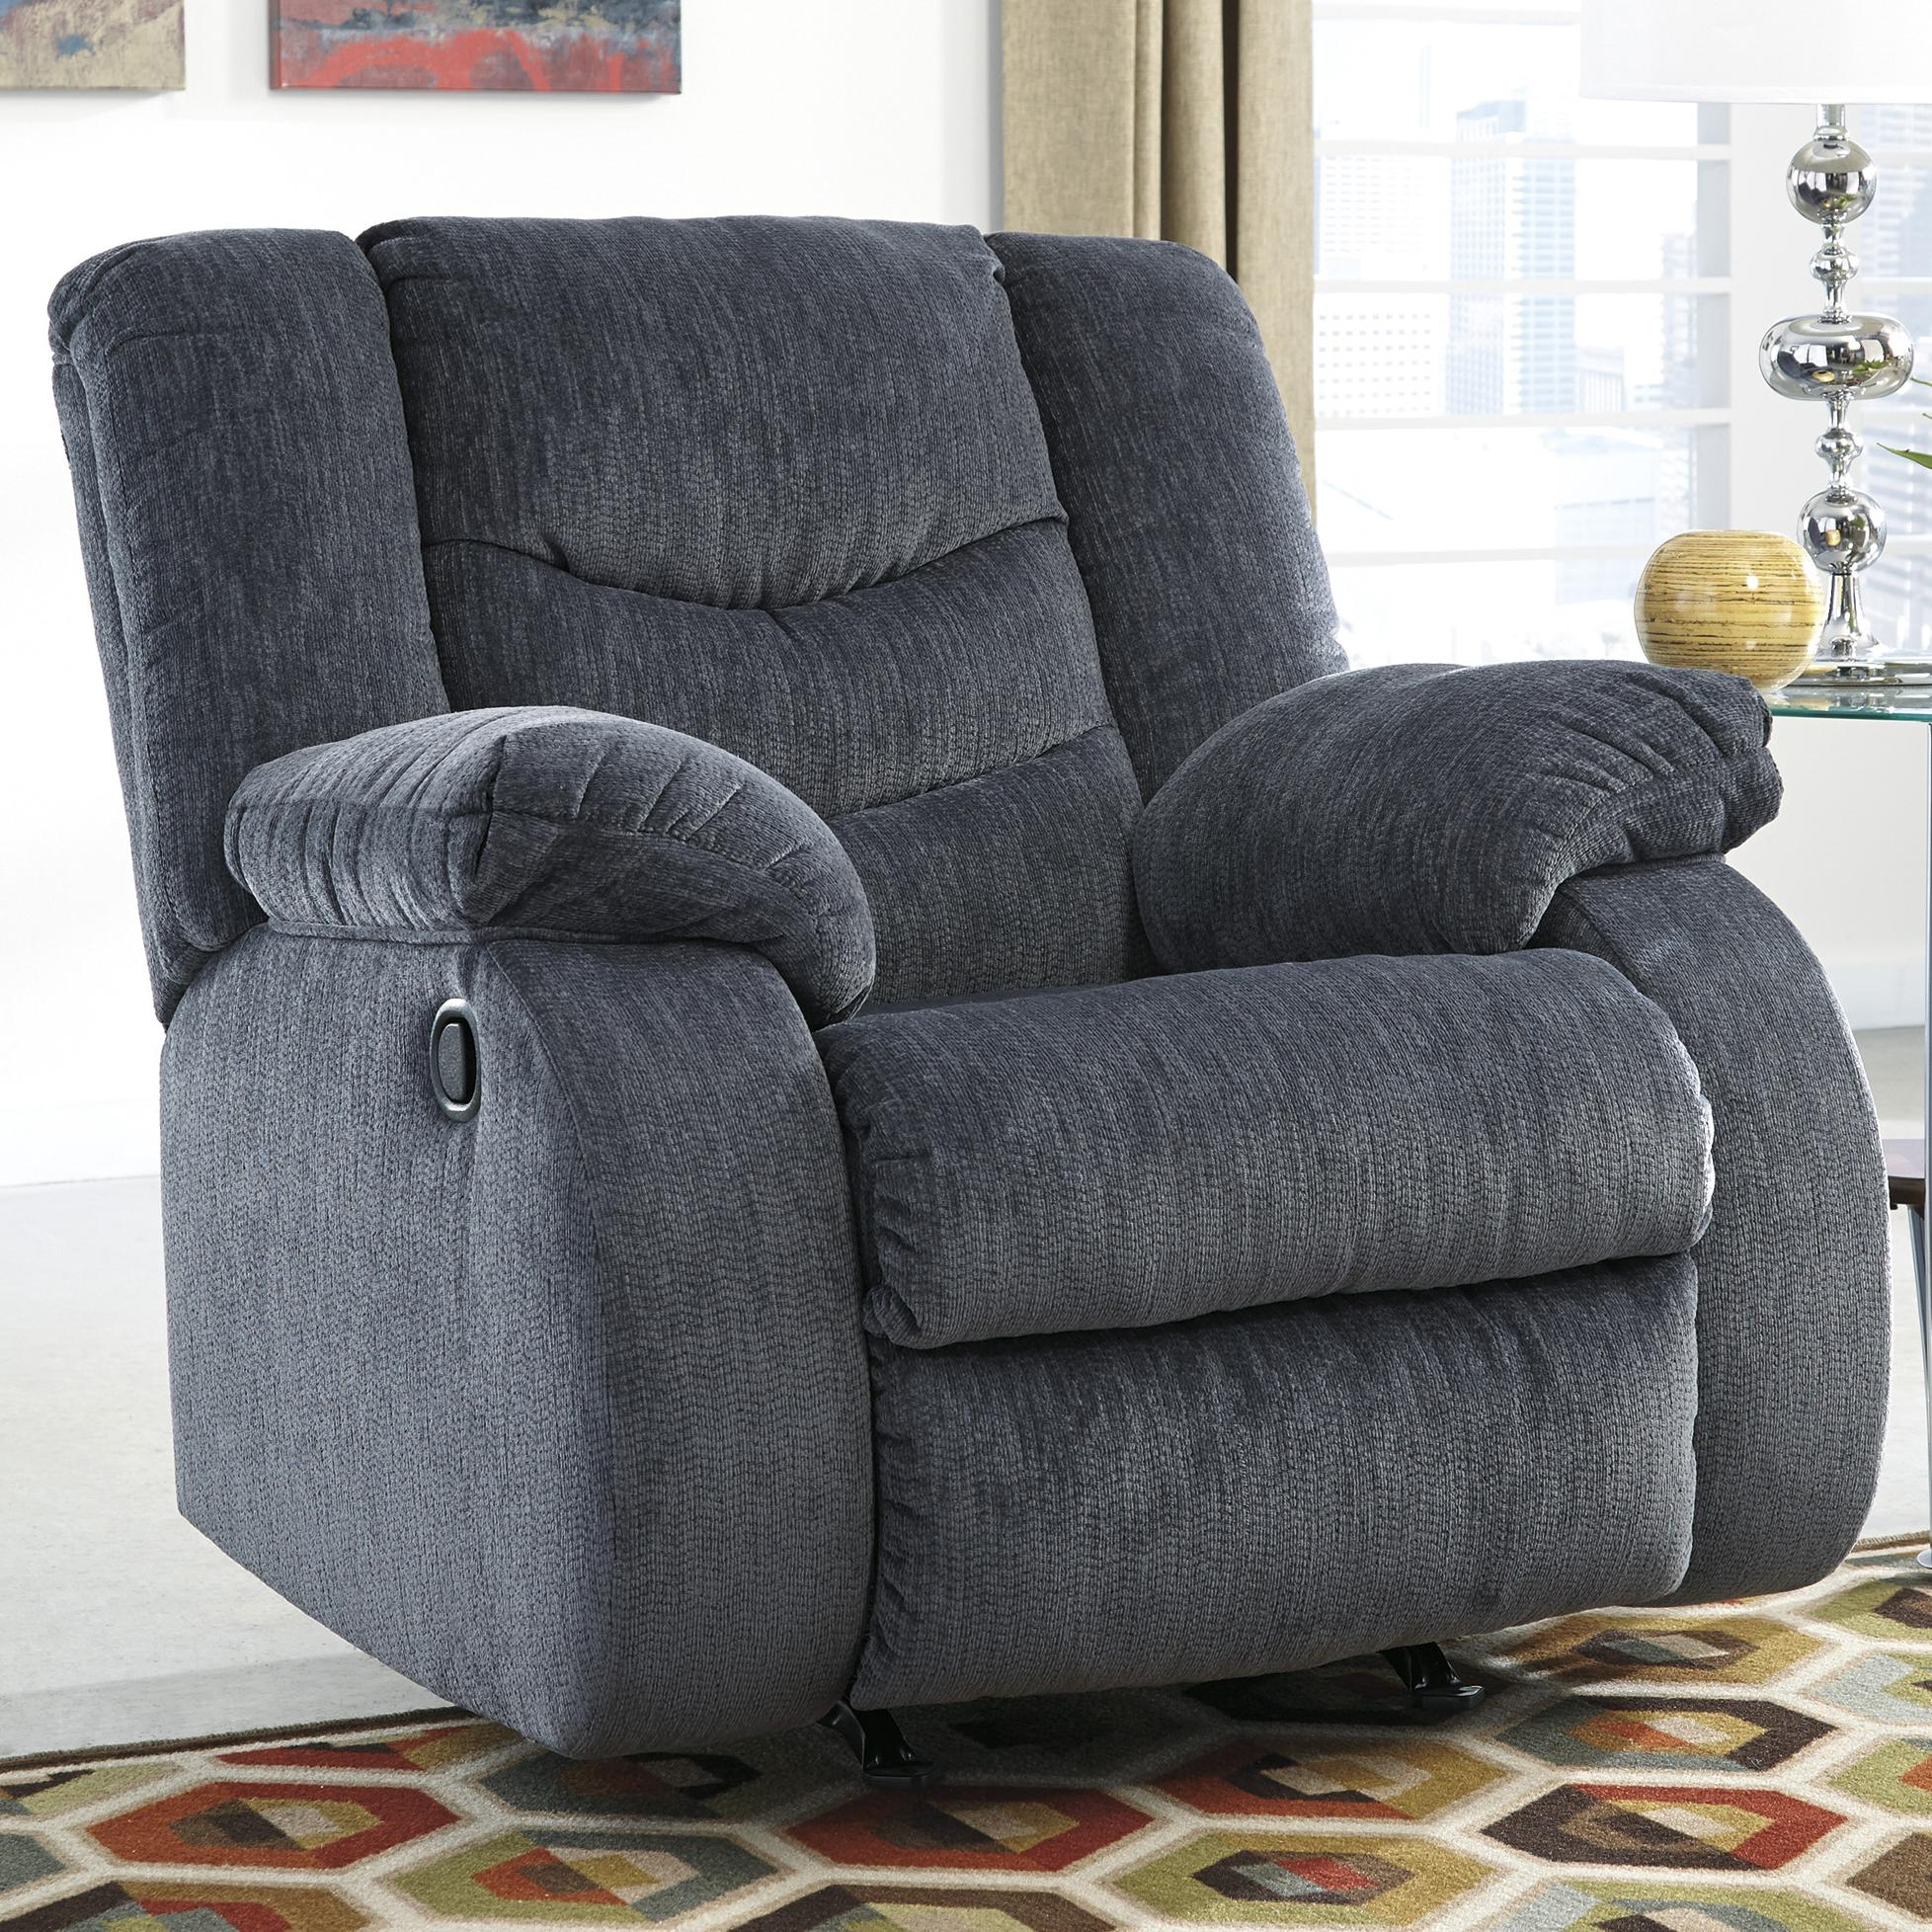 Signature Design by Ashley Garek - Blue Rocker Recliner - Item Number: 9200125